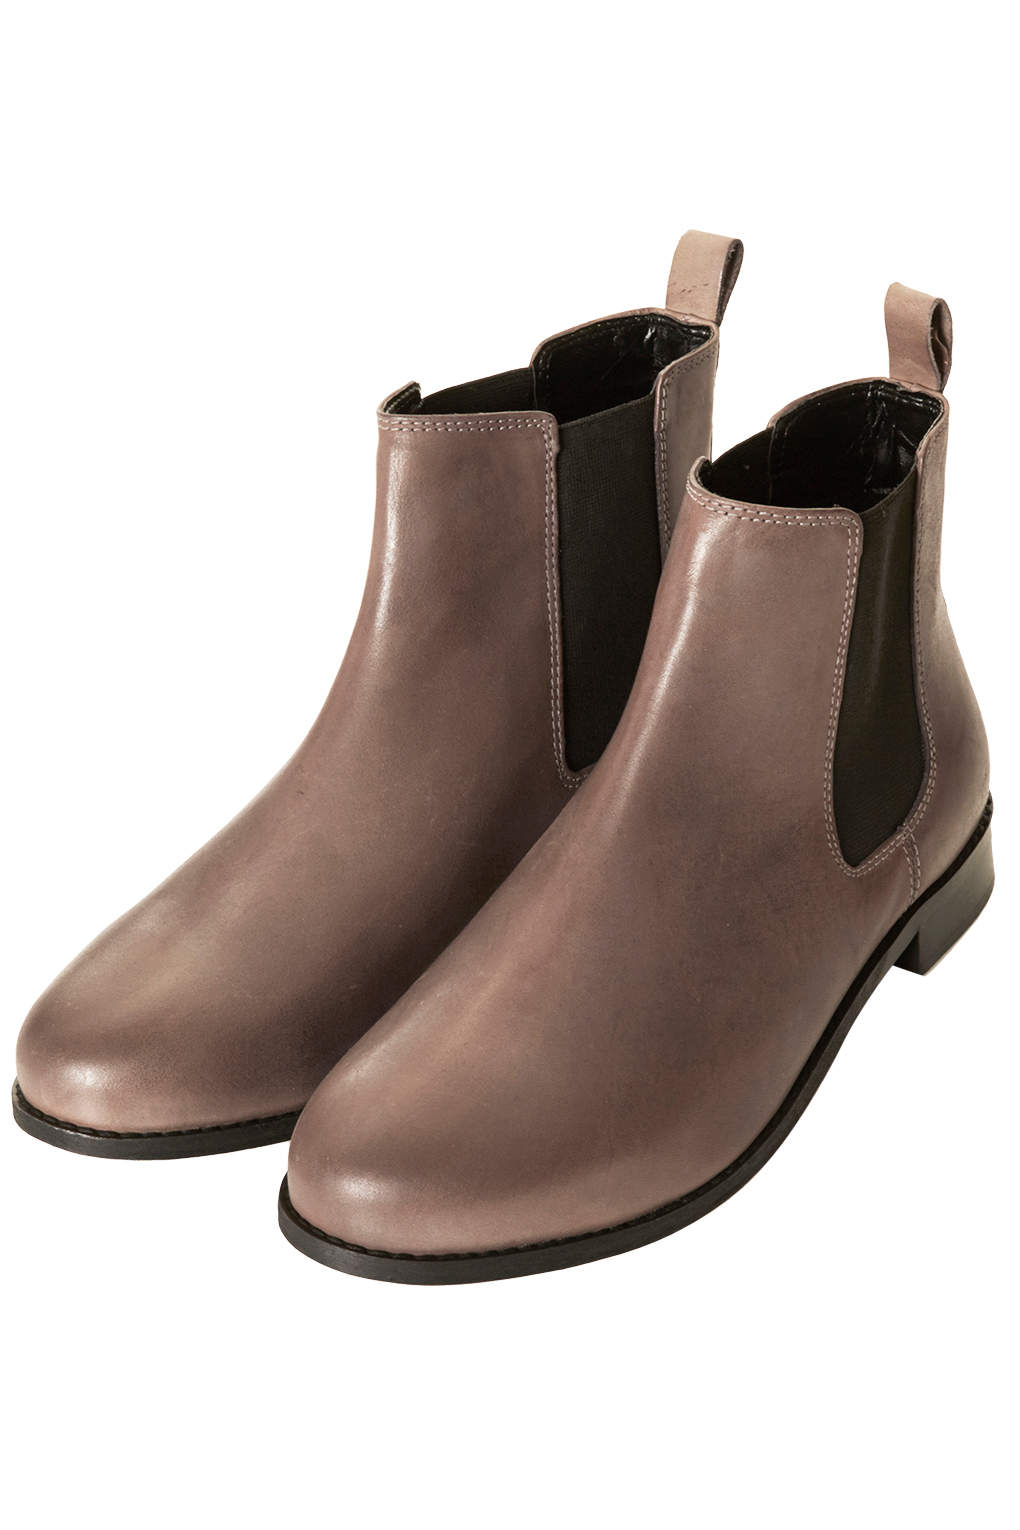 The Chelsea boot is an ever popular style and Blundstone debatably makes one of the most beloved pairs. Blundstone just released a new heeled Chelsea boot for women. They stay true to the classic.